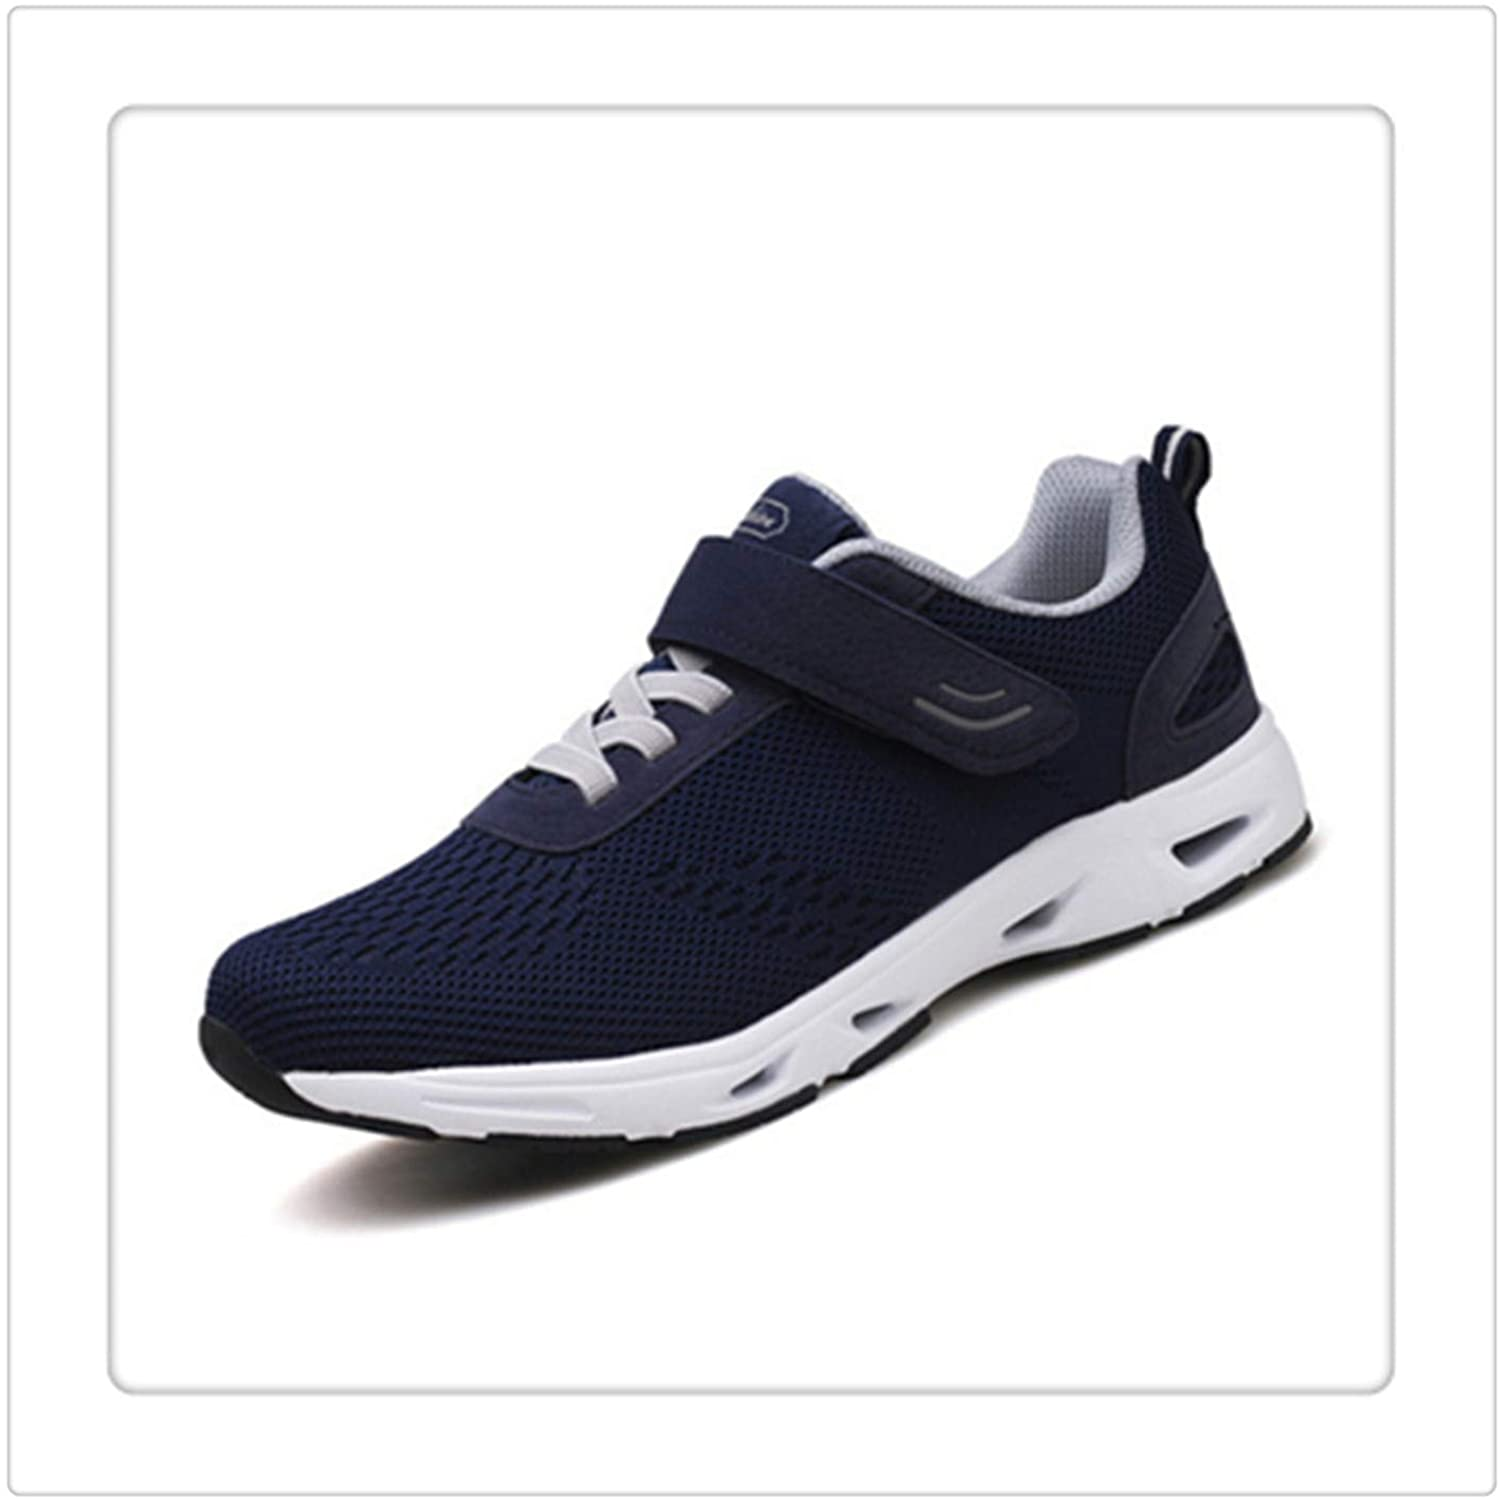 DOUSTY& Summer Women Breathable Sneakers Mesh Lightweight Trainers Women Canvas shoes Creepers Flats Casual shoes Chaussure Femme 5 9.5